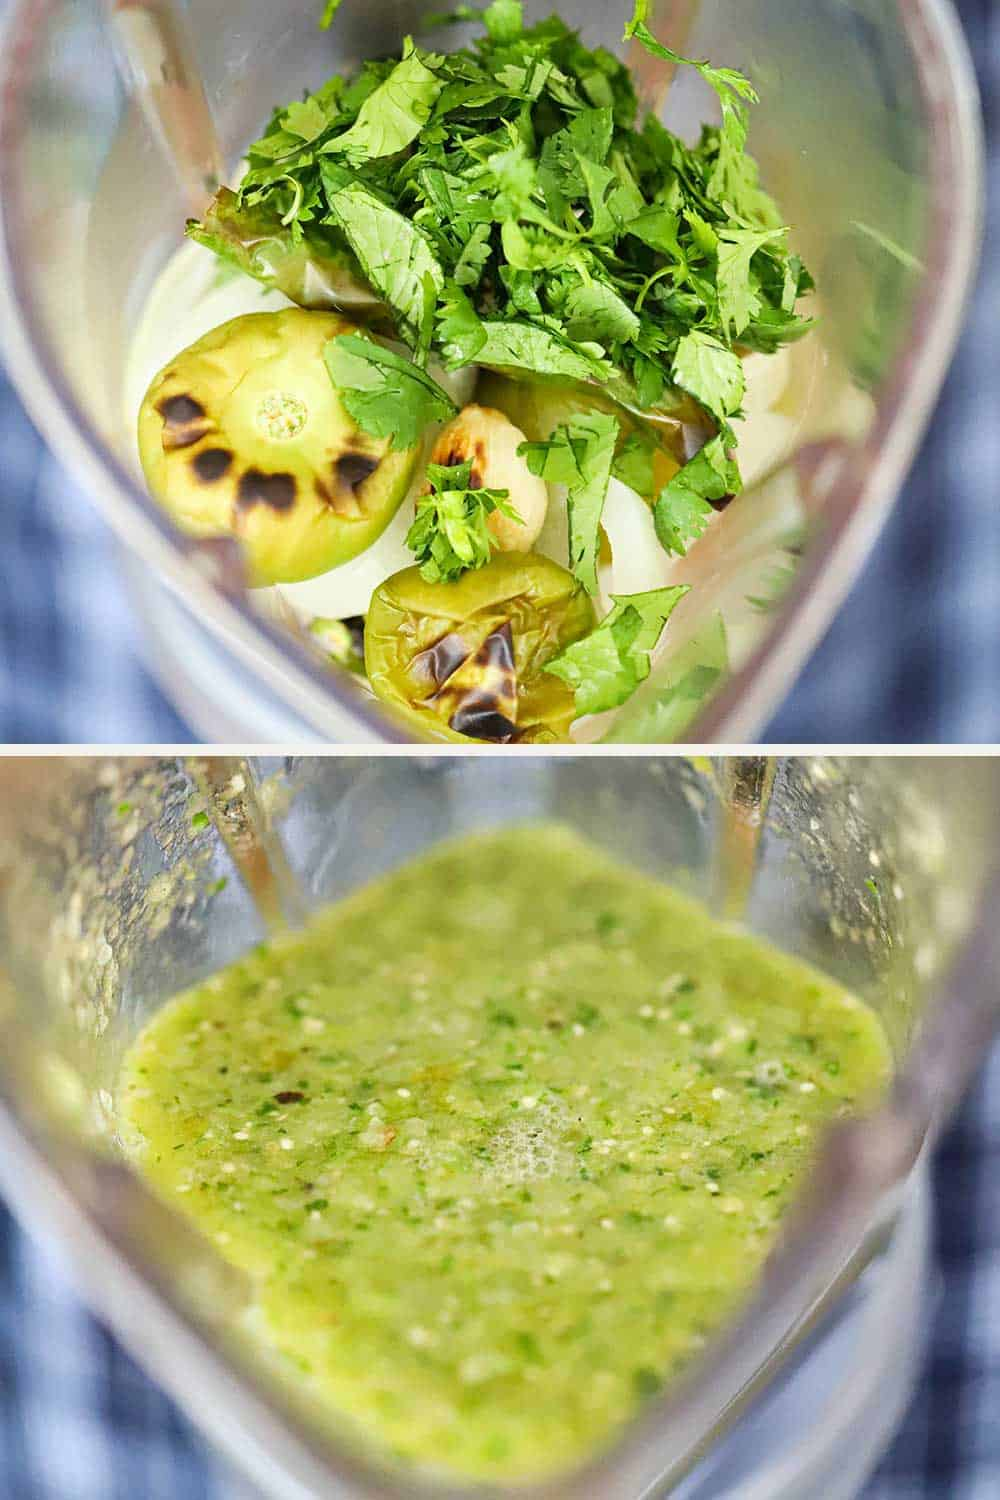 2 stacked photos, the top a view looking into a blender filled with roasted tomatillos and pepper, and the bottom image the same blender with the vegetables puréed.